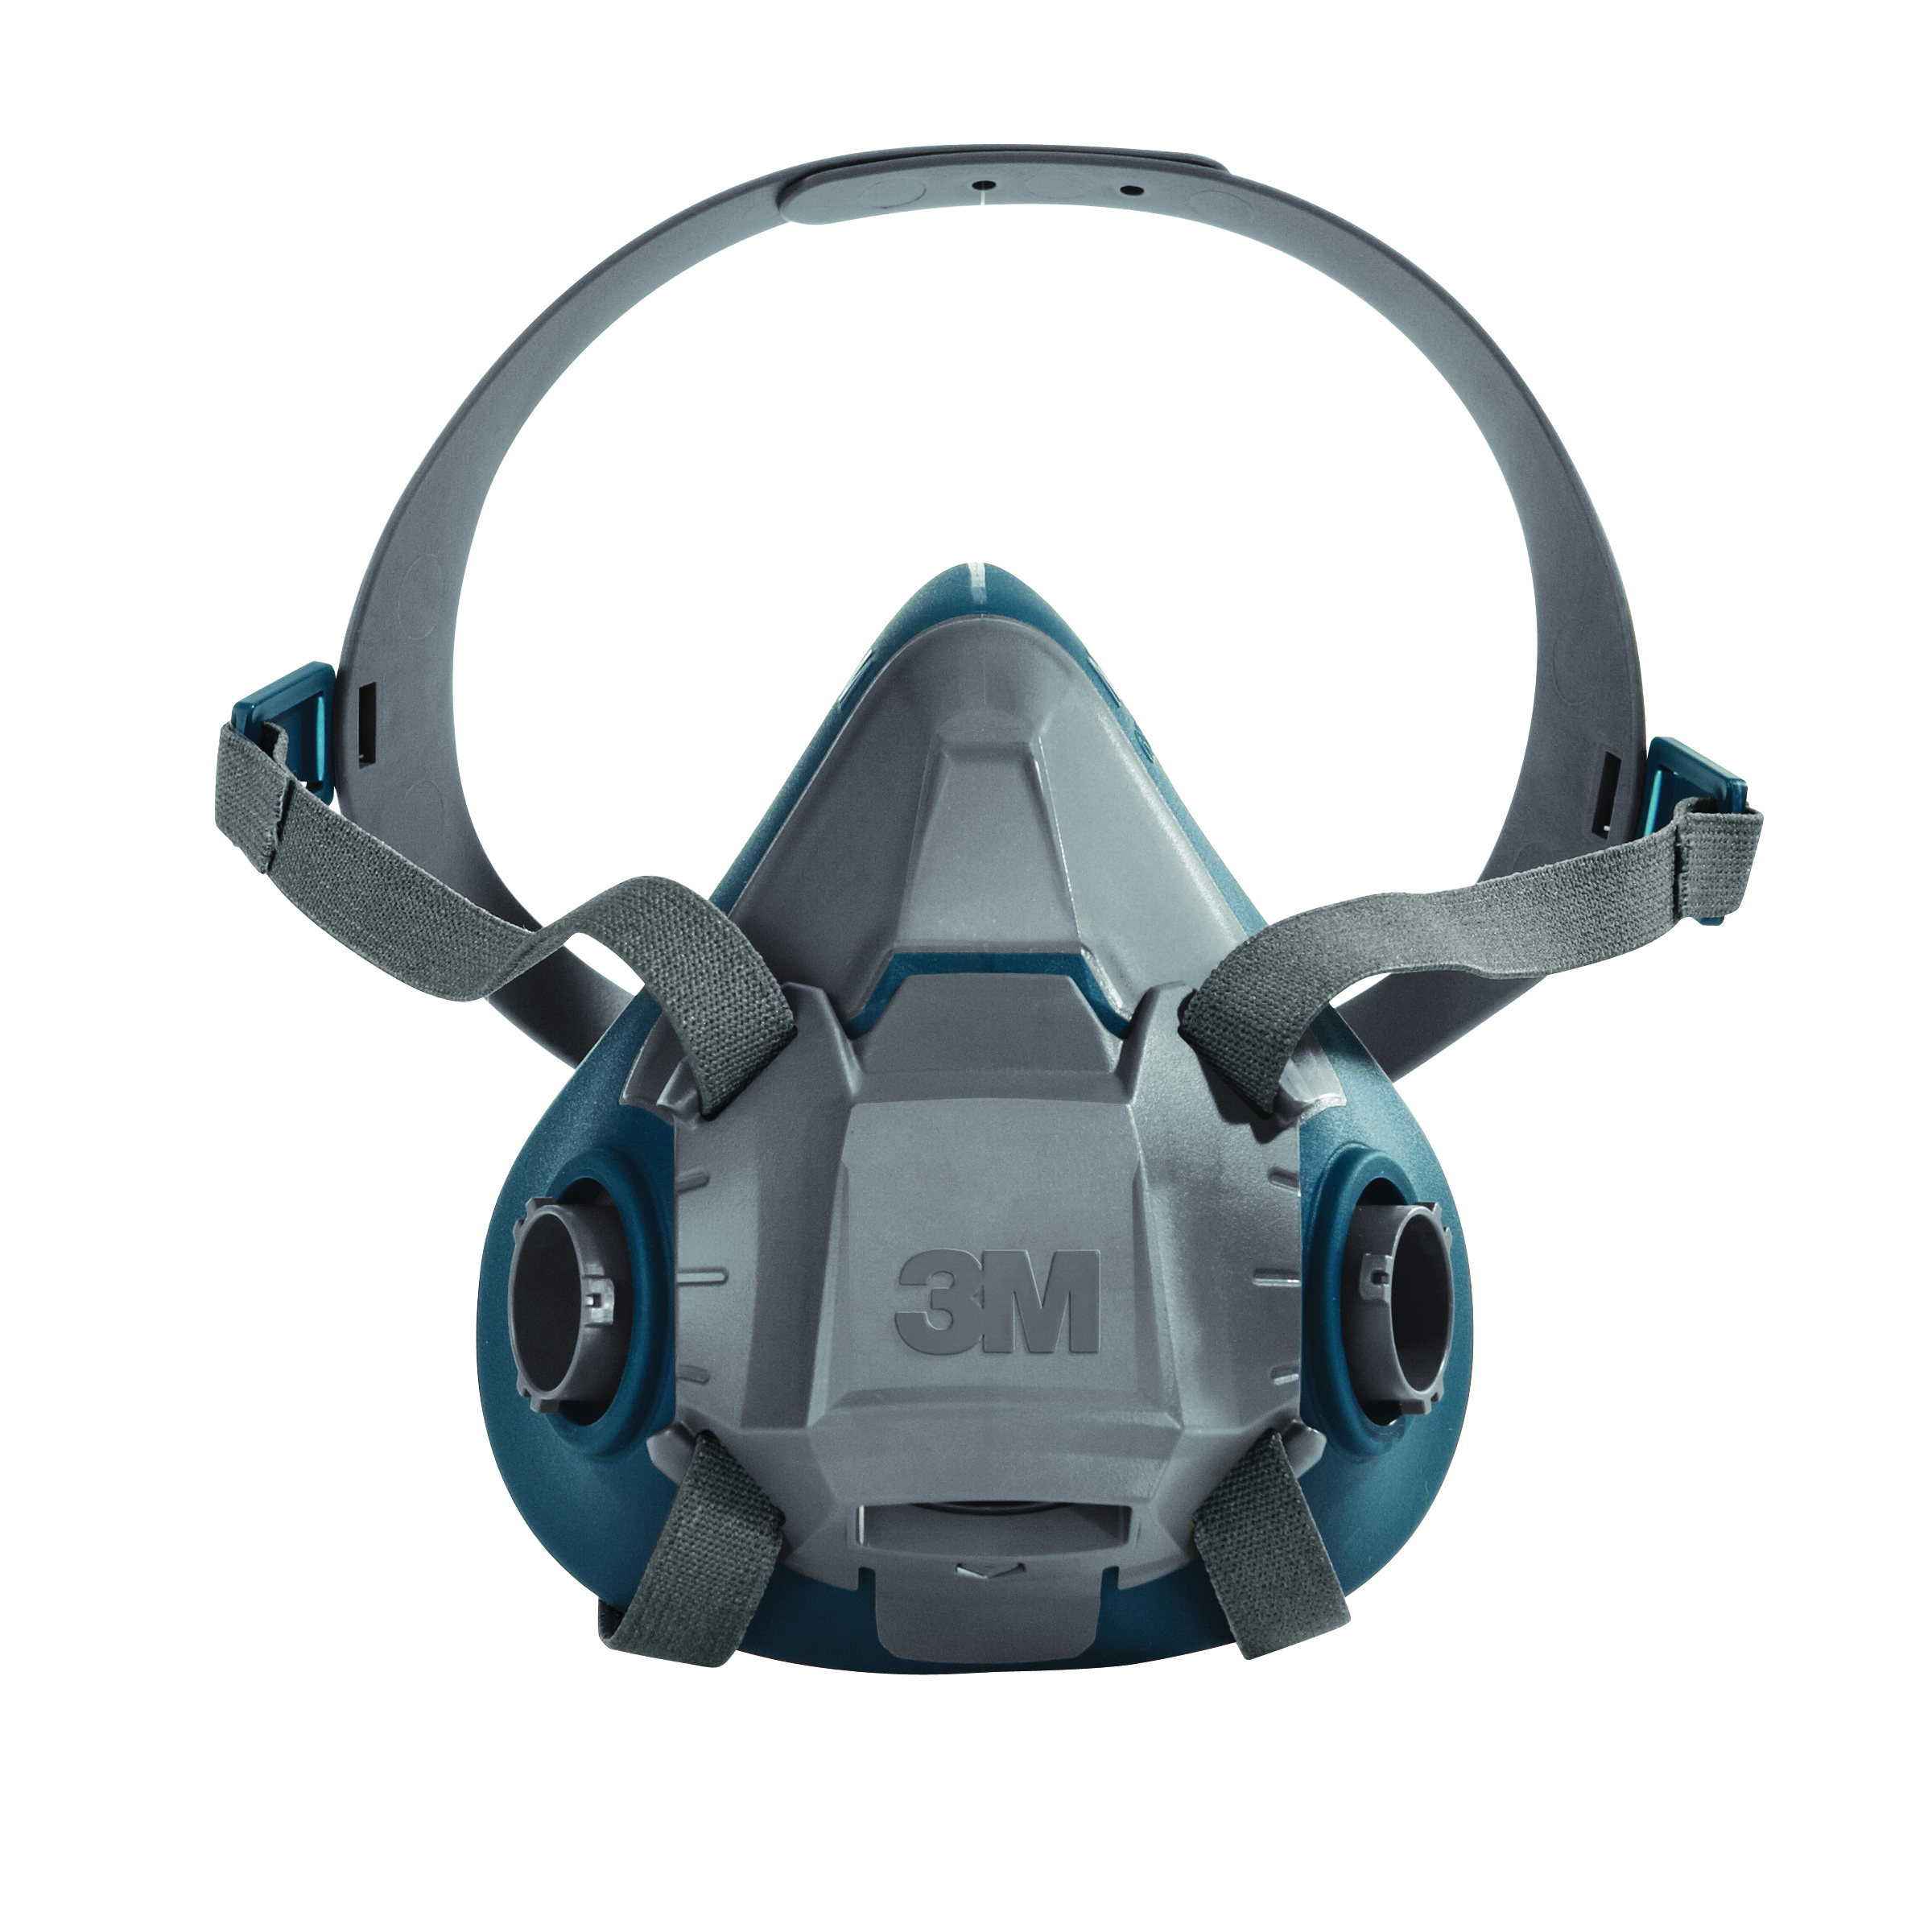 3M™ 051131-49491 6503 Probed Reusable Half Facepiece Respirator, L, 4-Point Suspension, Bayonet Connection, Resists: Gases and Vapors